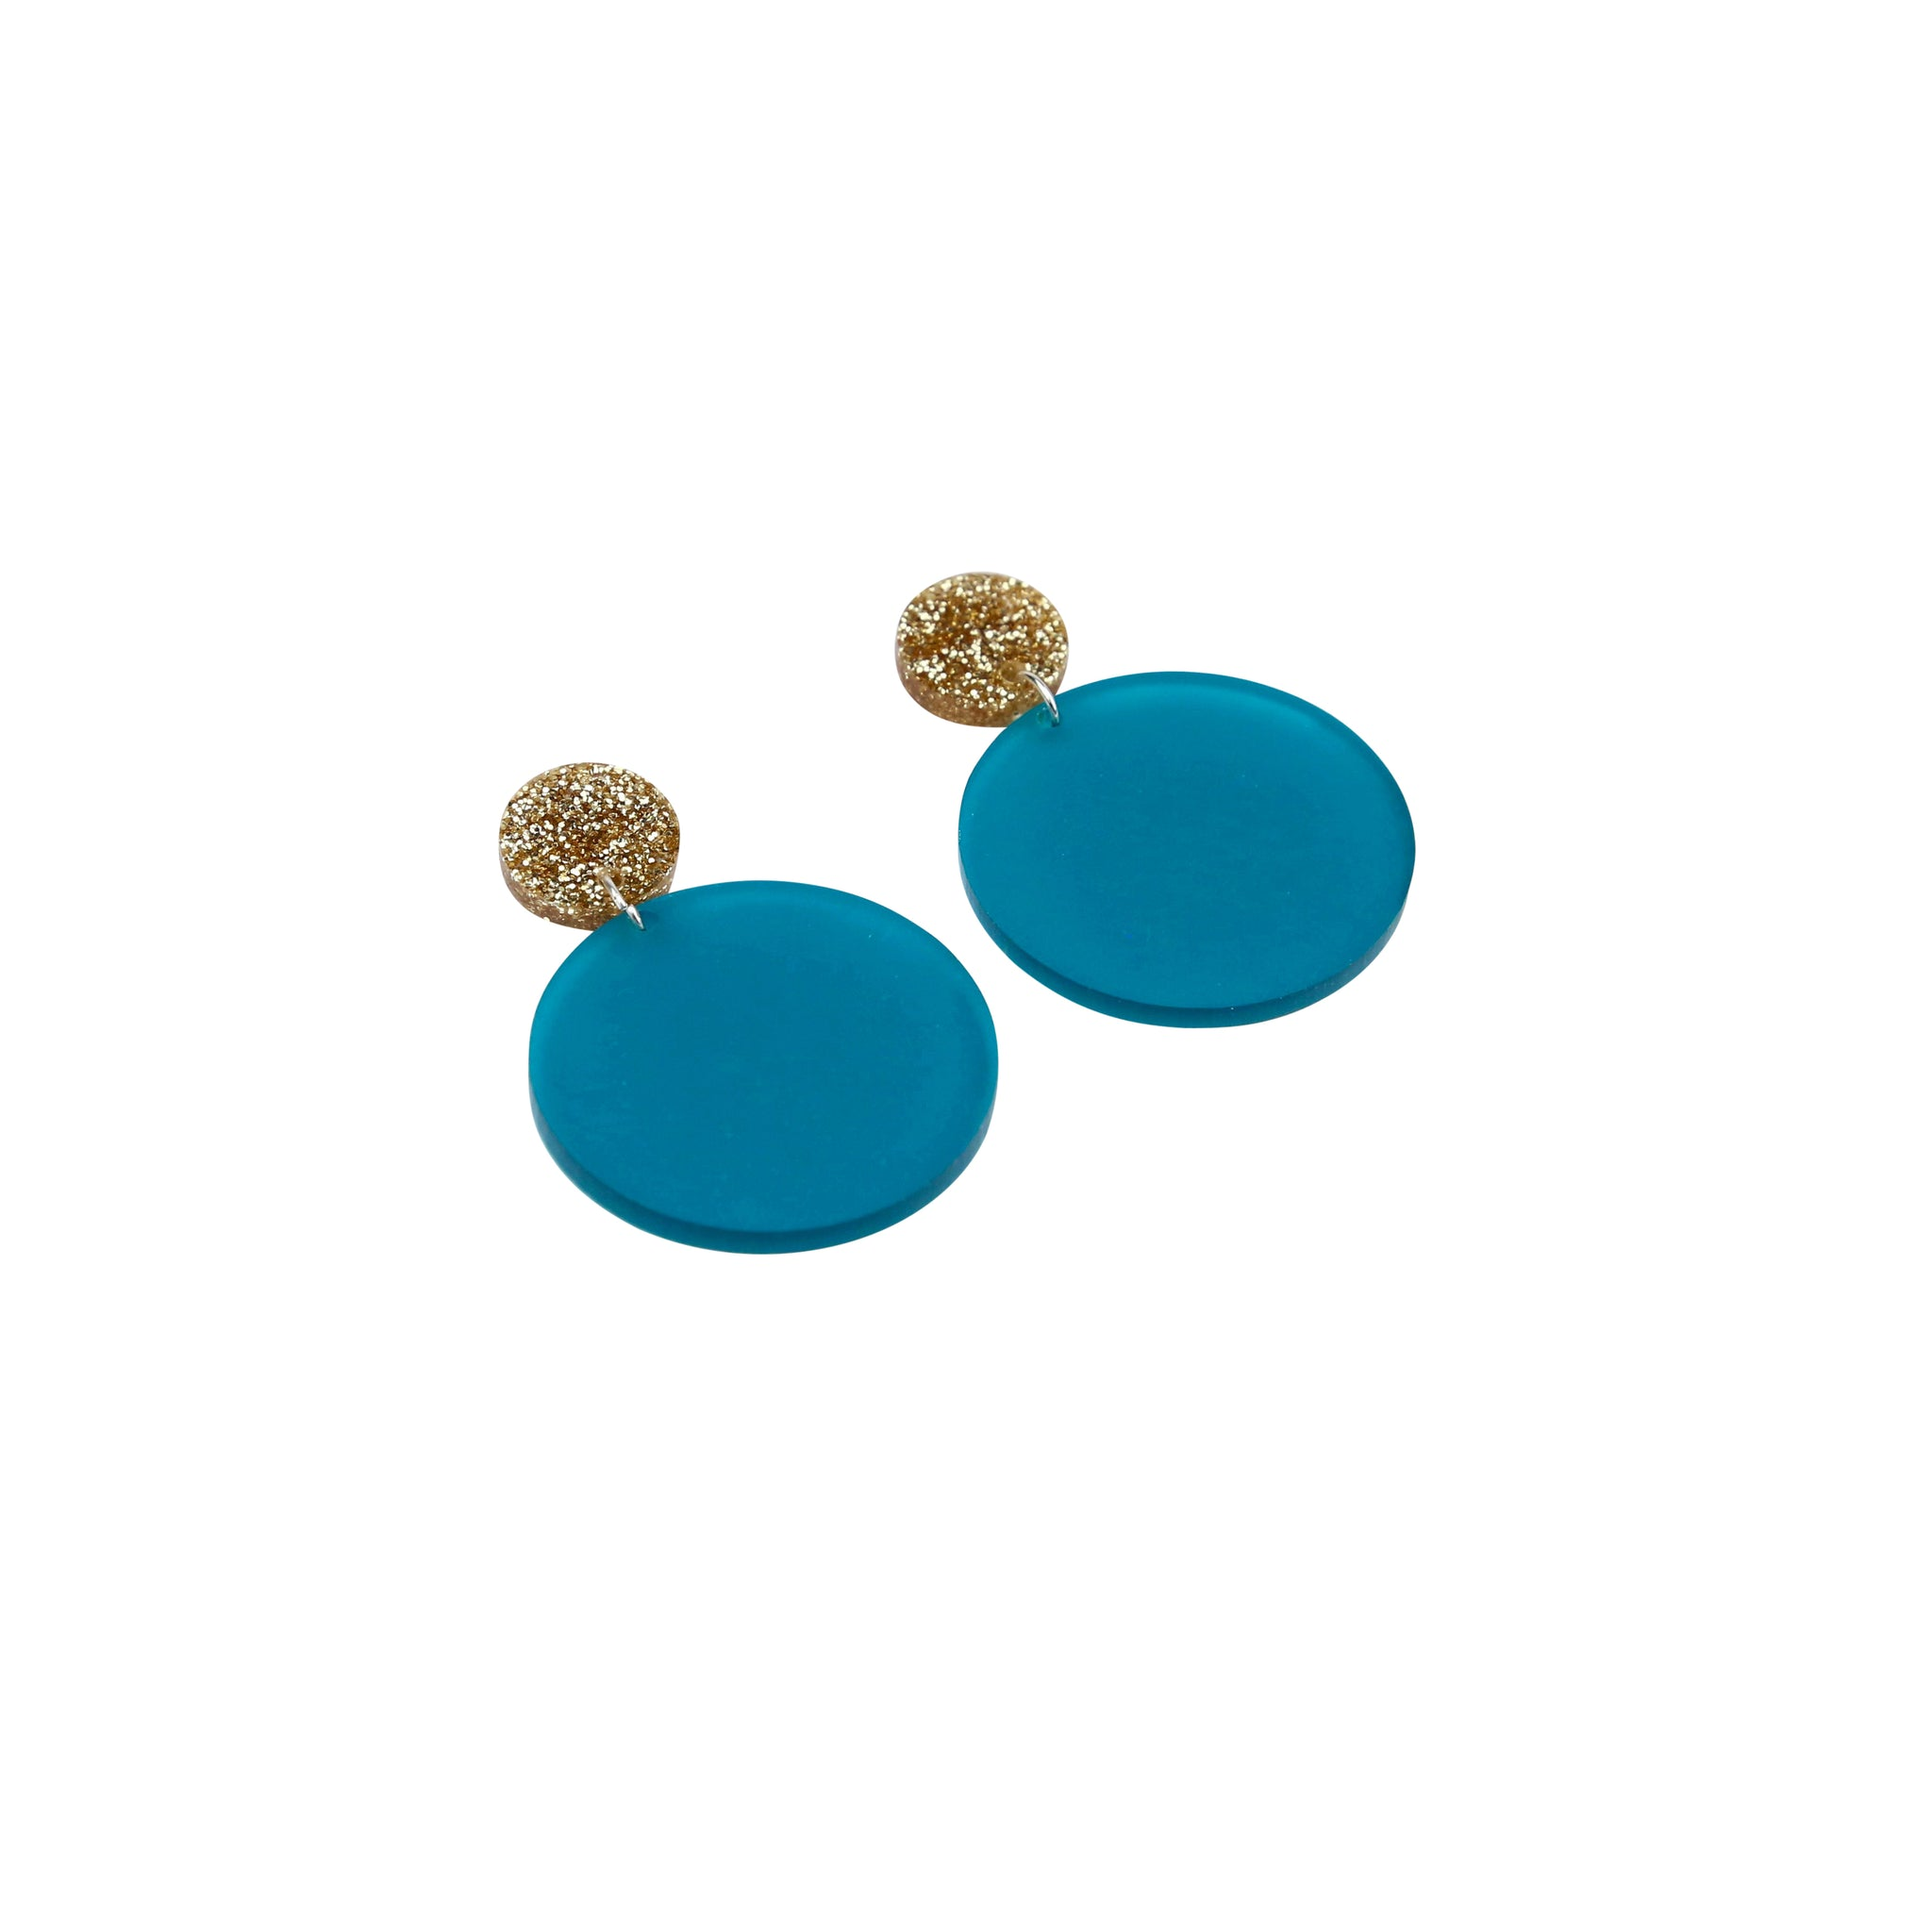 Geo Large Circles I Gold Glitter & Frosted Teal